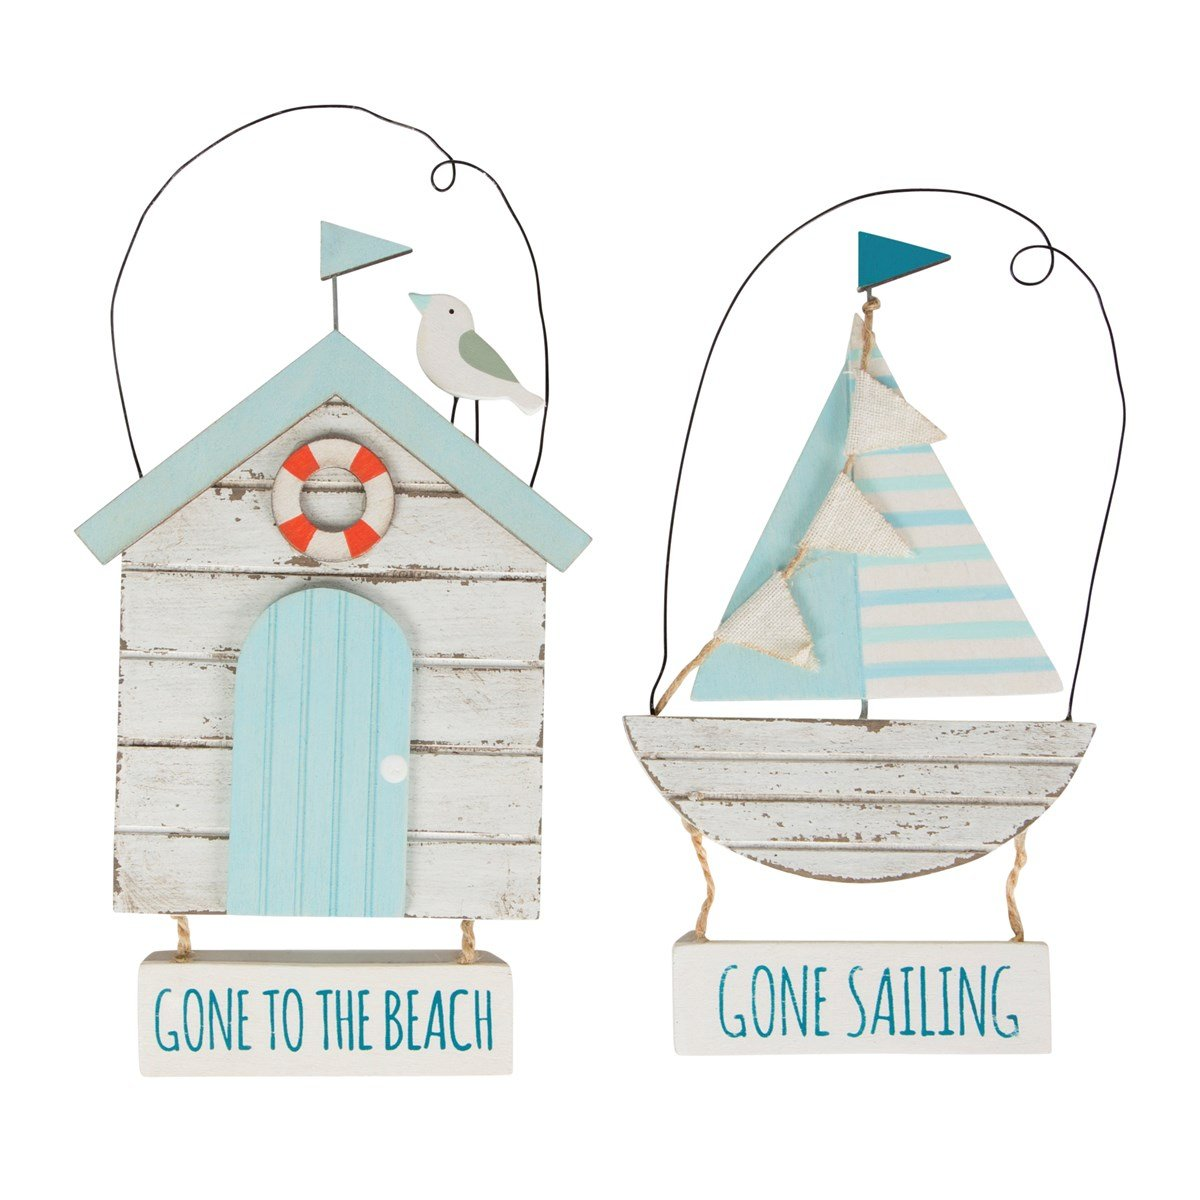 Sass & Belle - Caseta de Playa Gone To The Beach Shabby Chic de madera señal para colgar: Amazon.es: Hogar